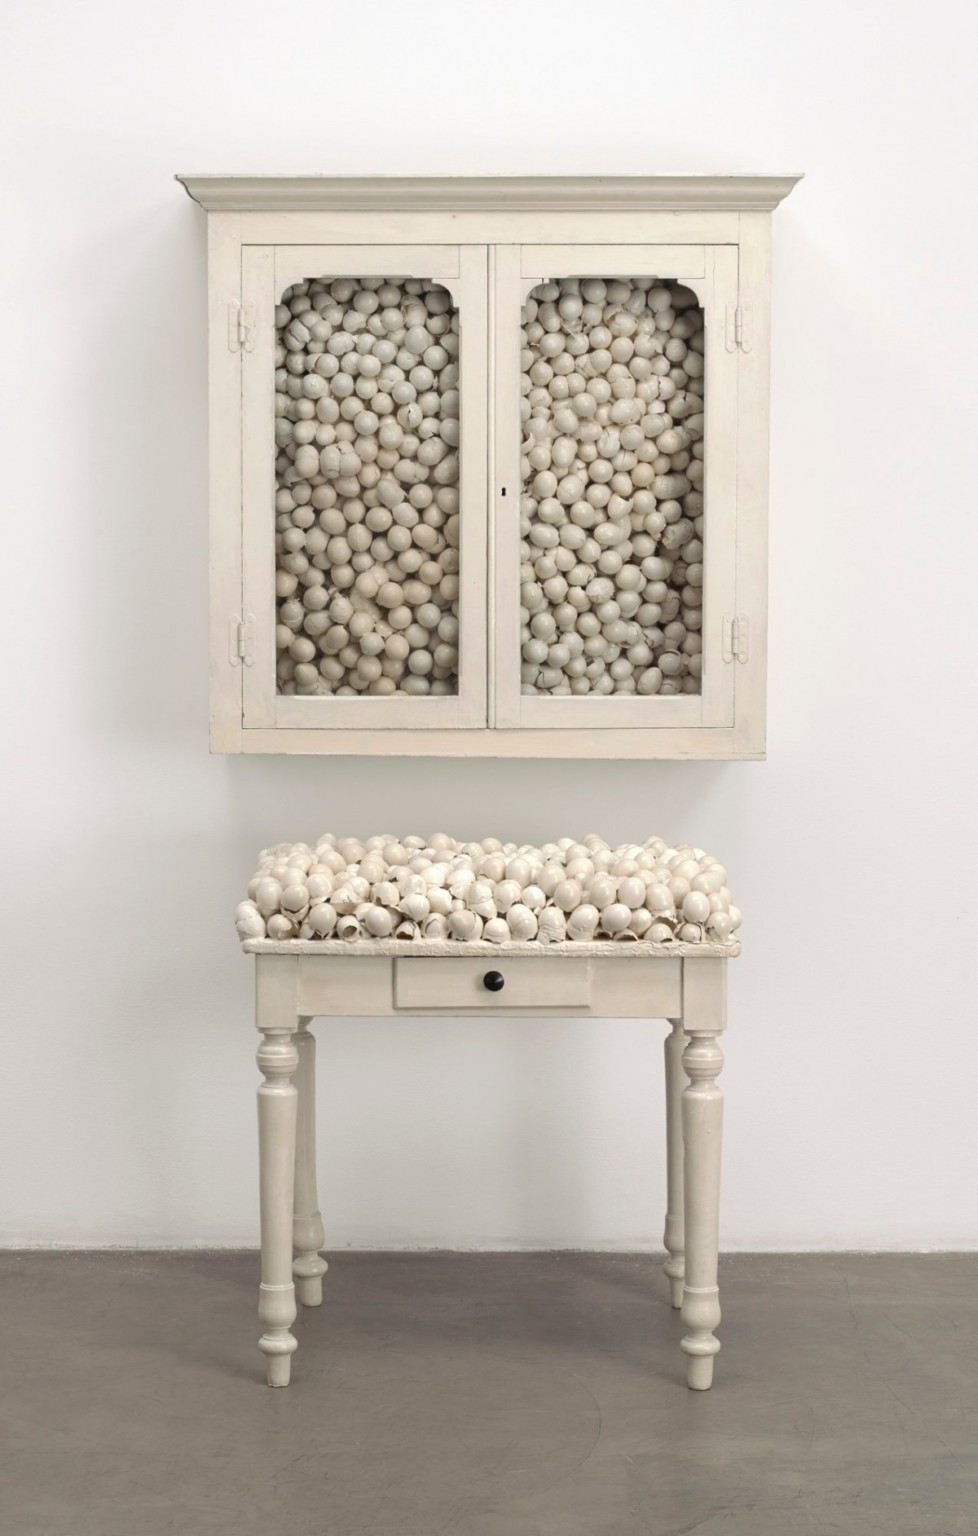 marcel-broodthaers-armoire-blanche-et-table-blanche-white-cabinet-and-white-table-1965-1200x1884